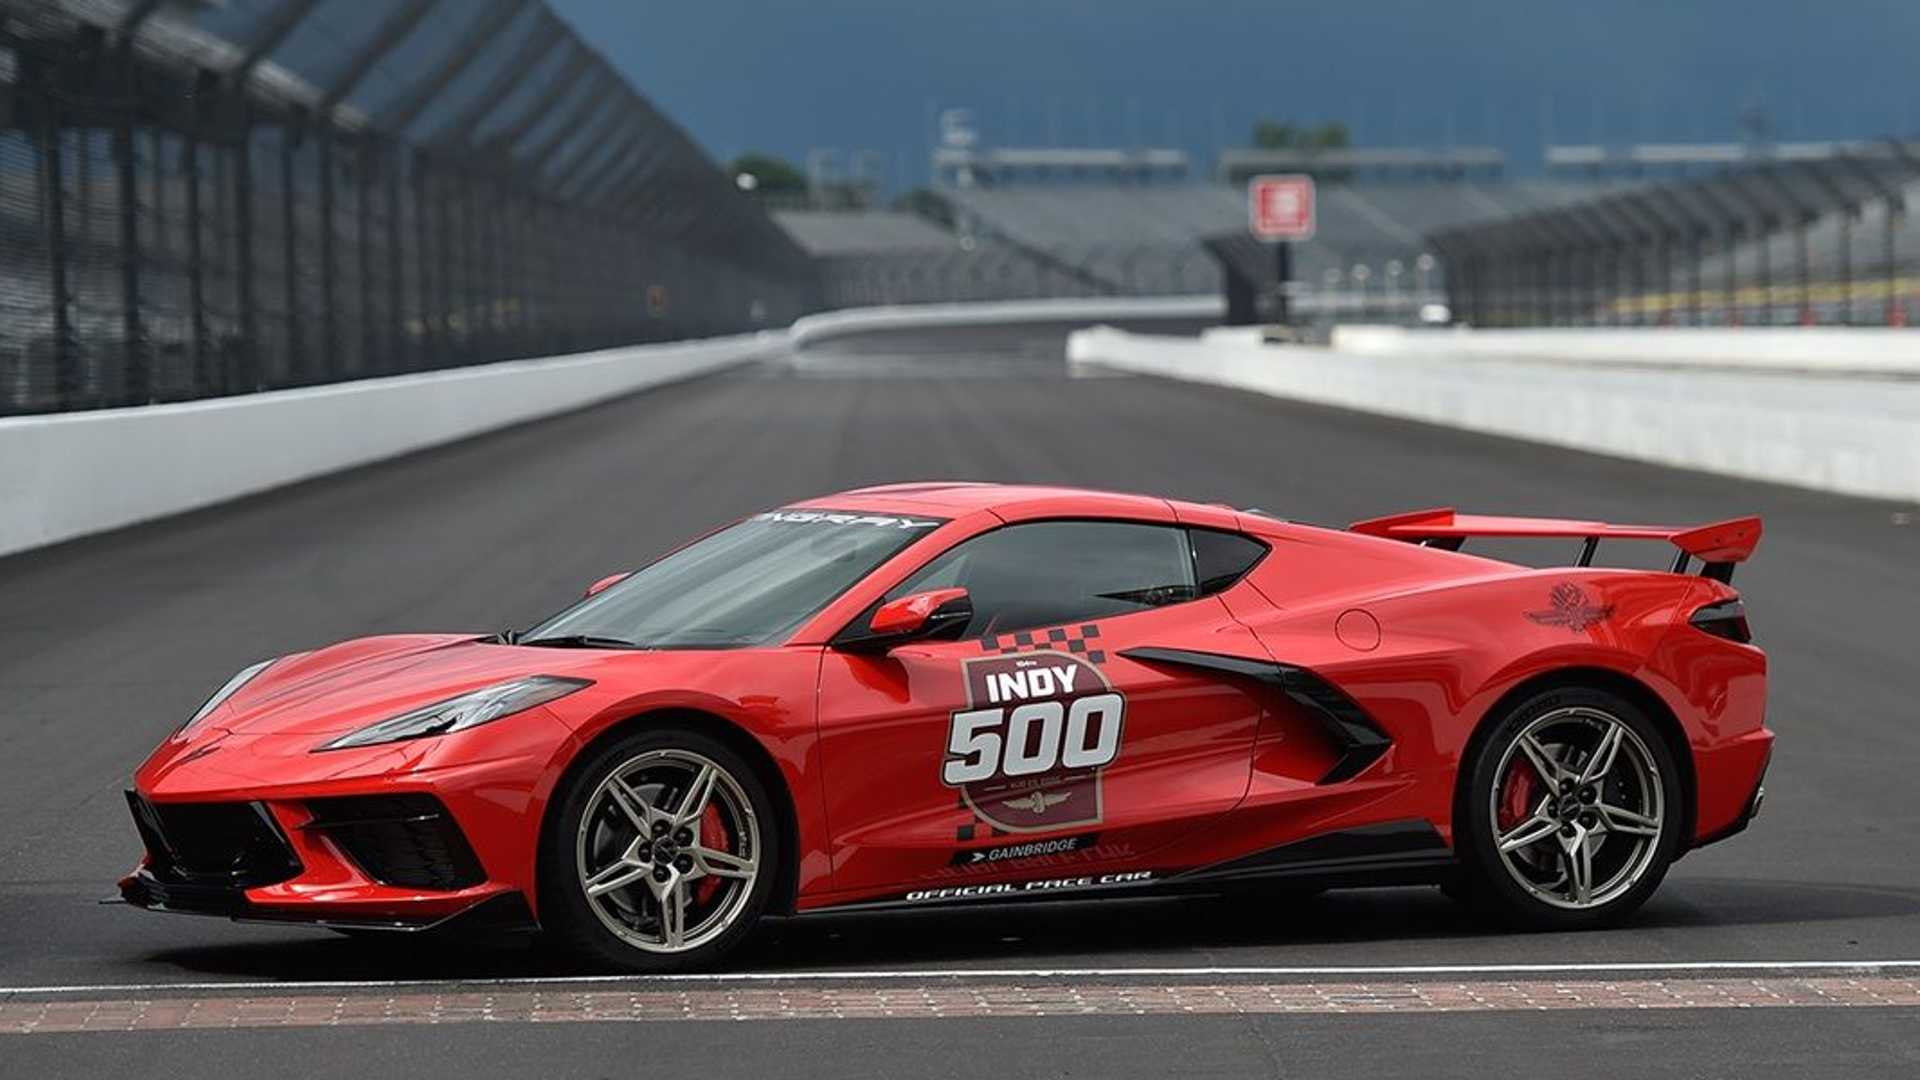 2019 - [Chevrolet] Corvette C8 Stingray - Page 7 2020-chevy-corvette-c8-indianapolis-500-pace-car-brickyard-close